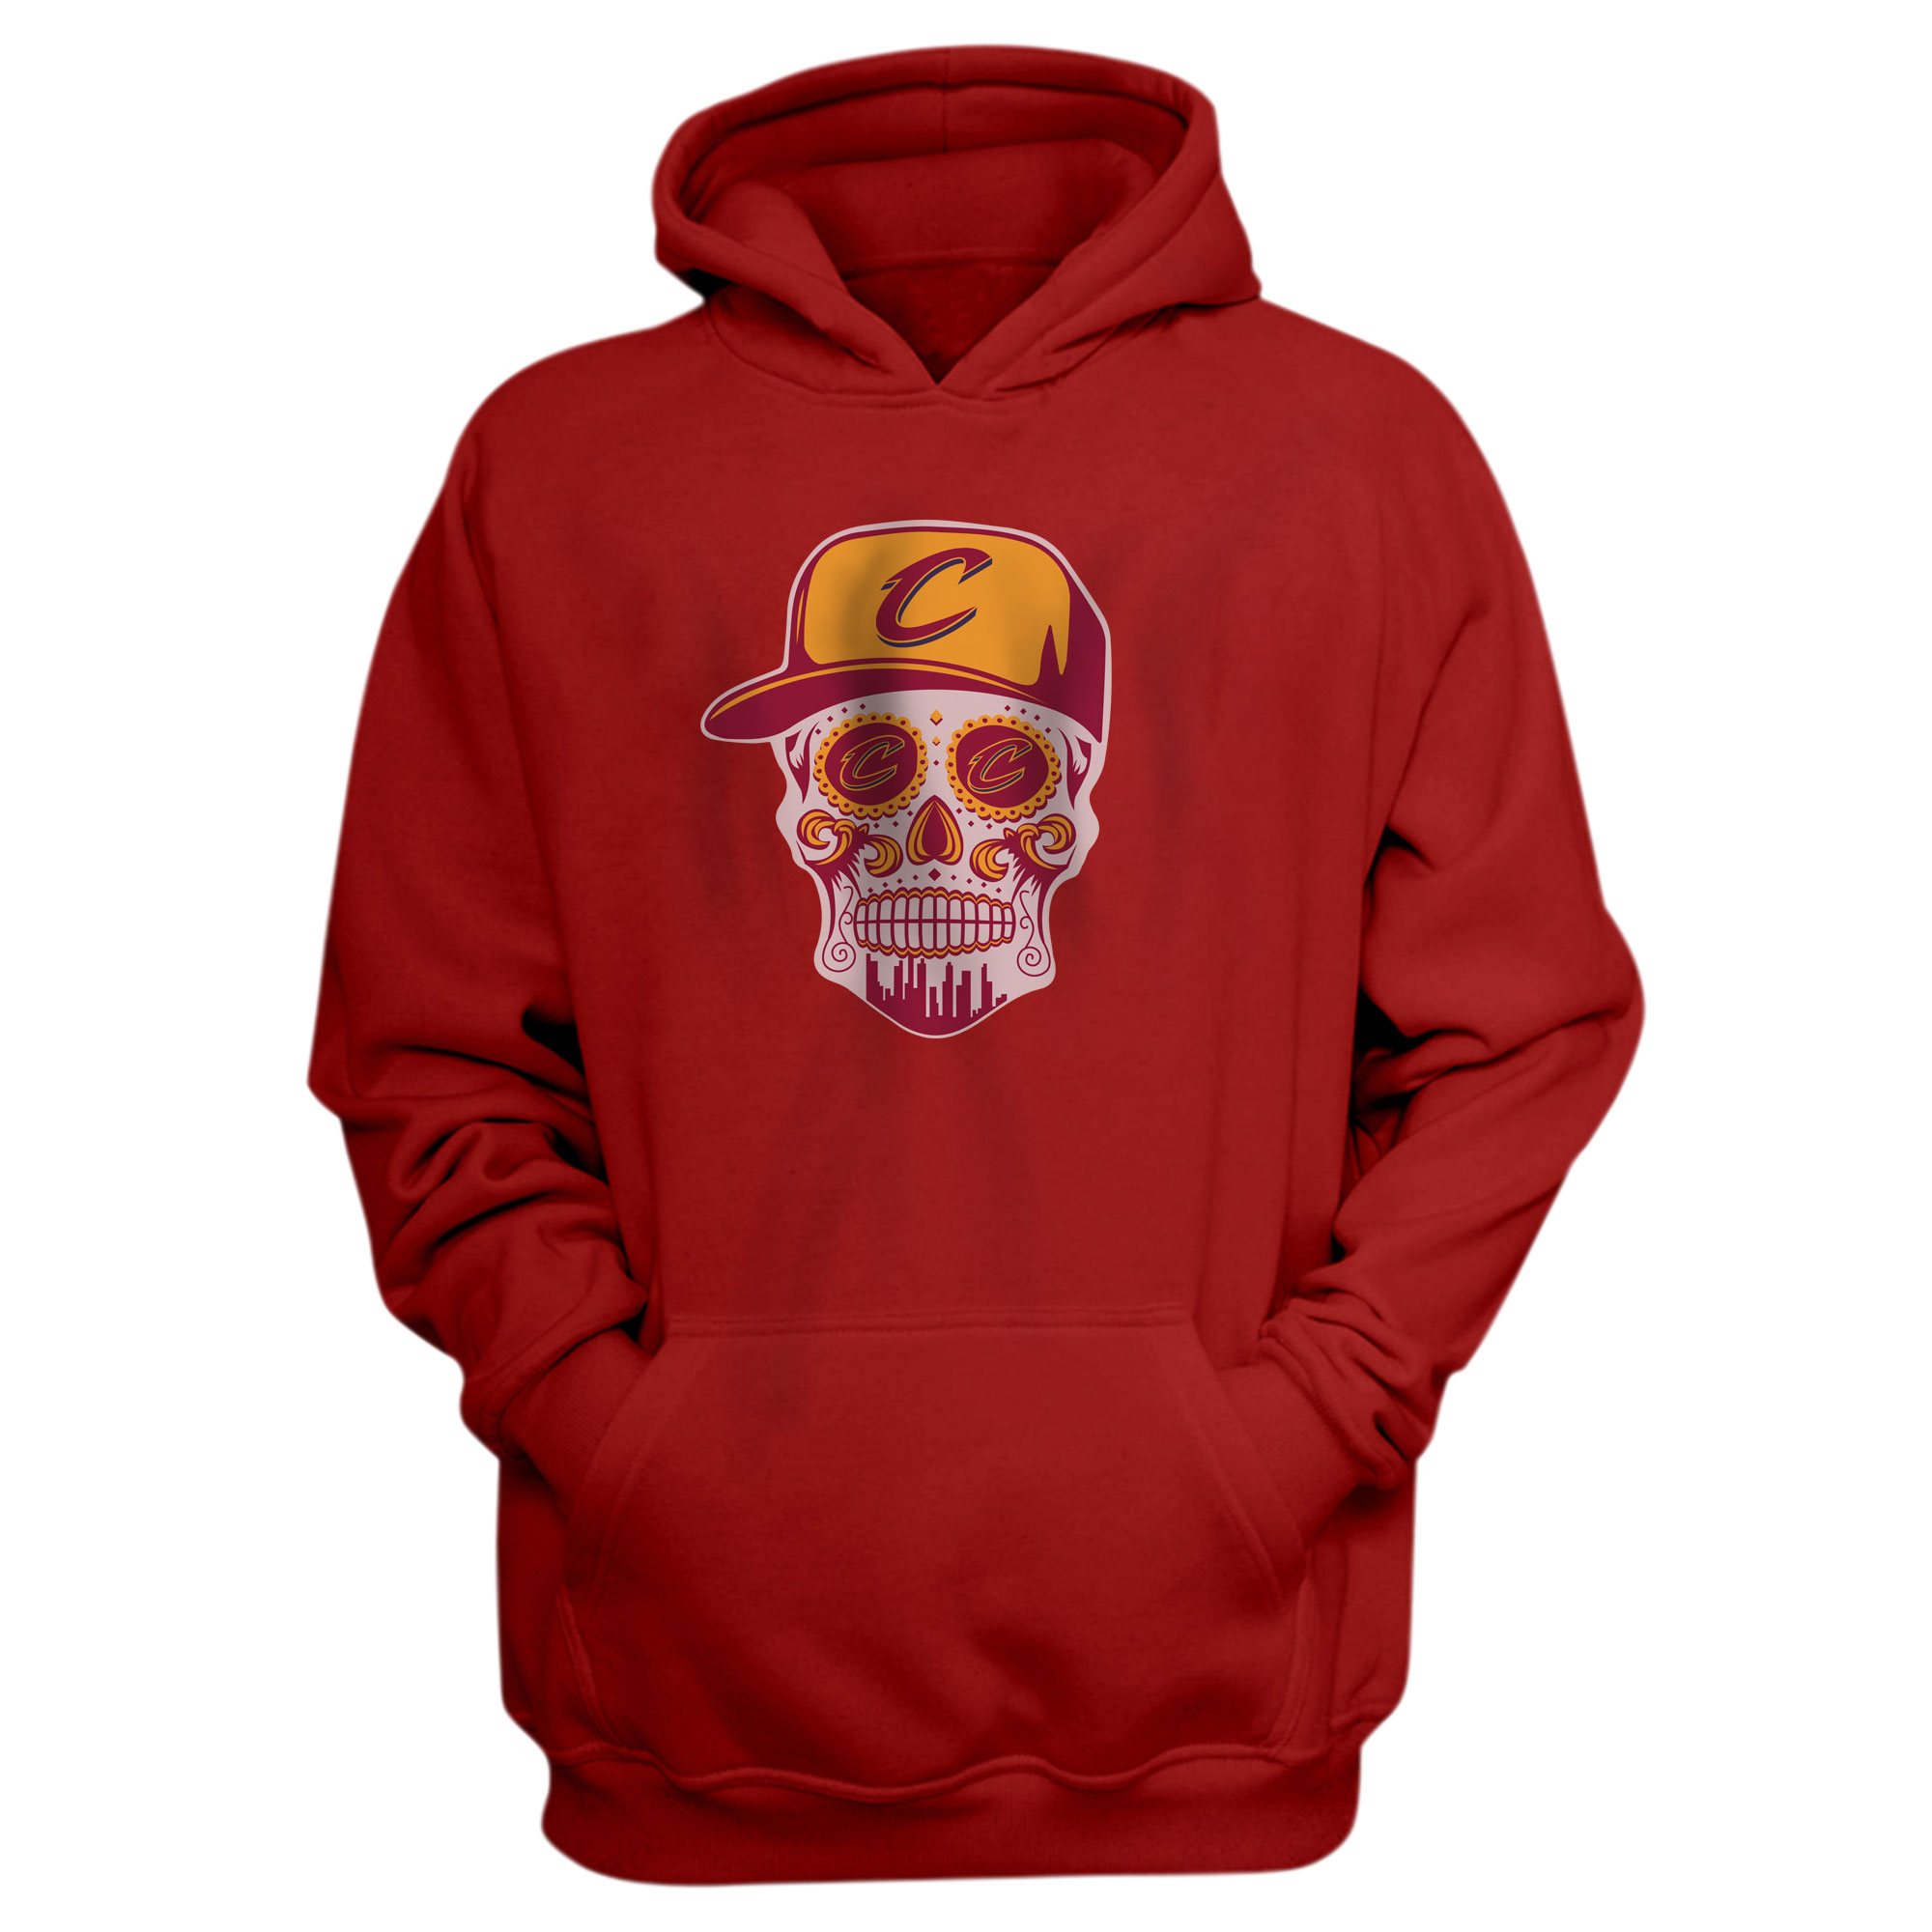 Cleveland  Skull Hoodie (HD-RED-NP-449-NBA-CLE-SKULL)